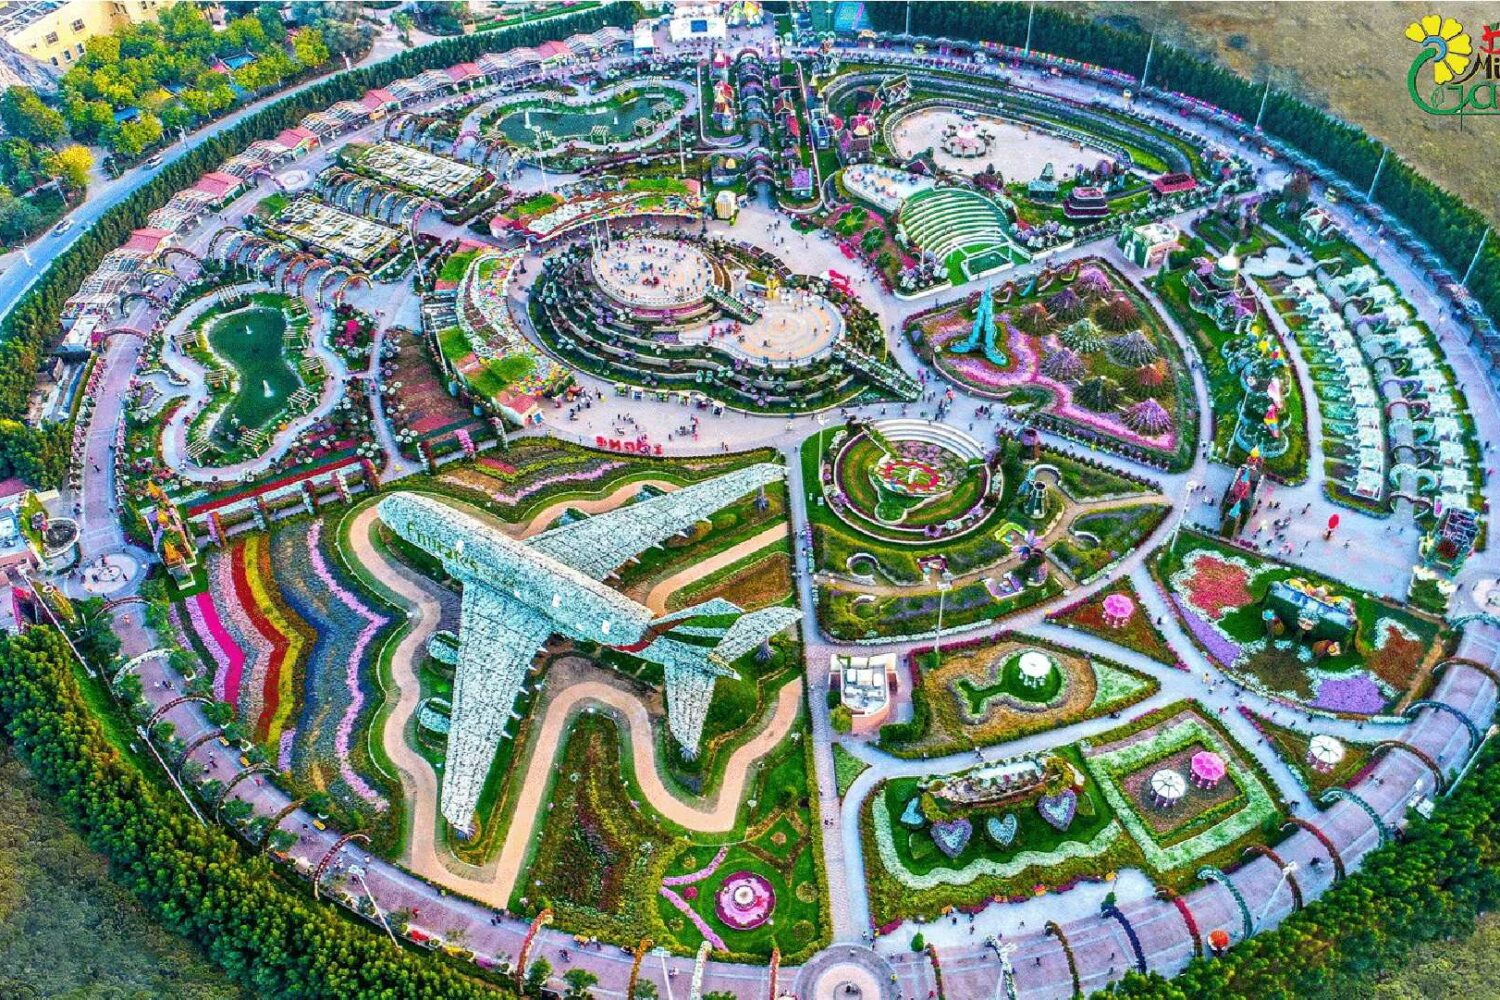 11Miracle Garden and Global Village